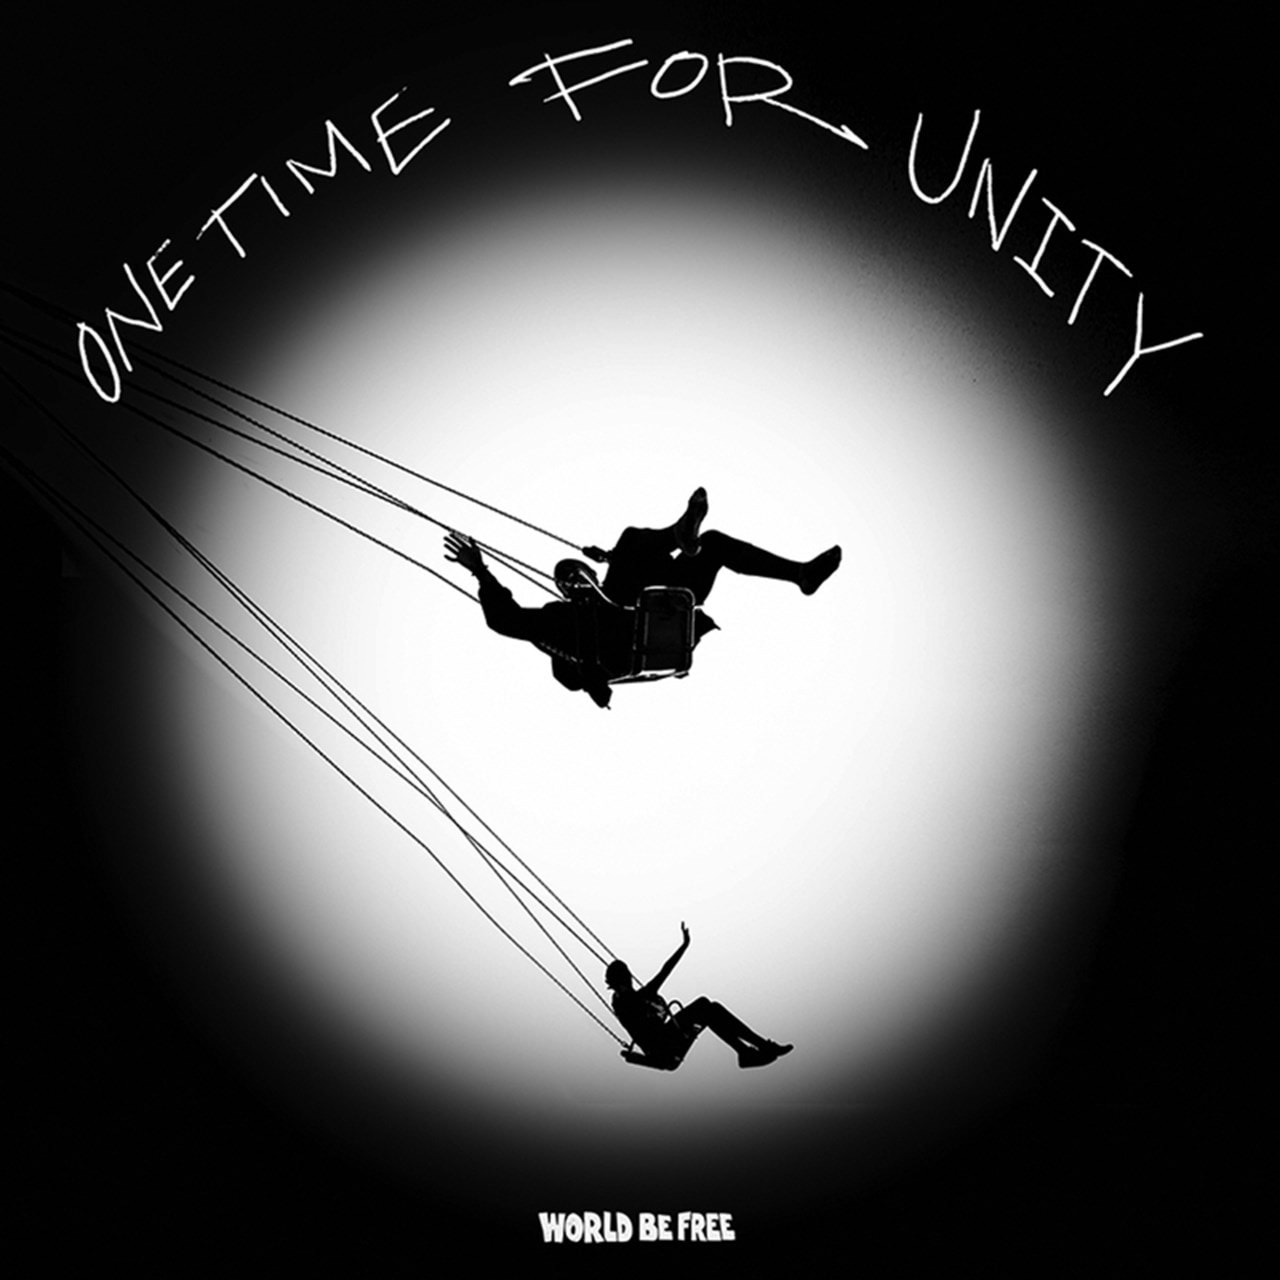 One Time for Unity - 1